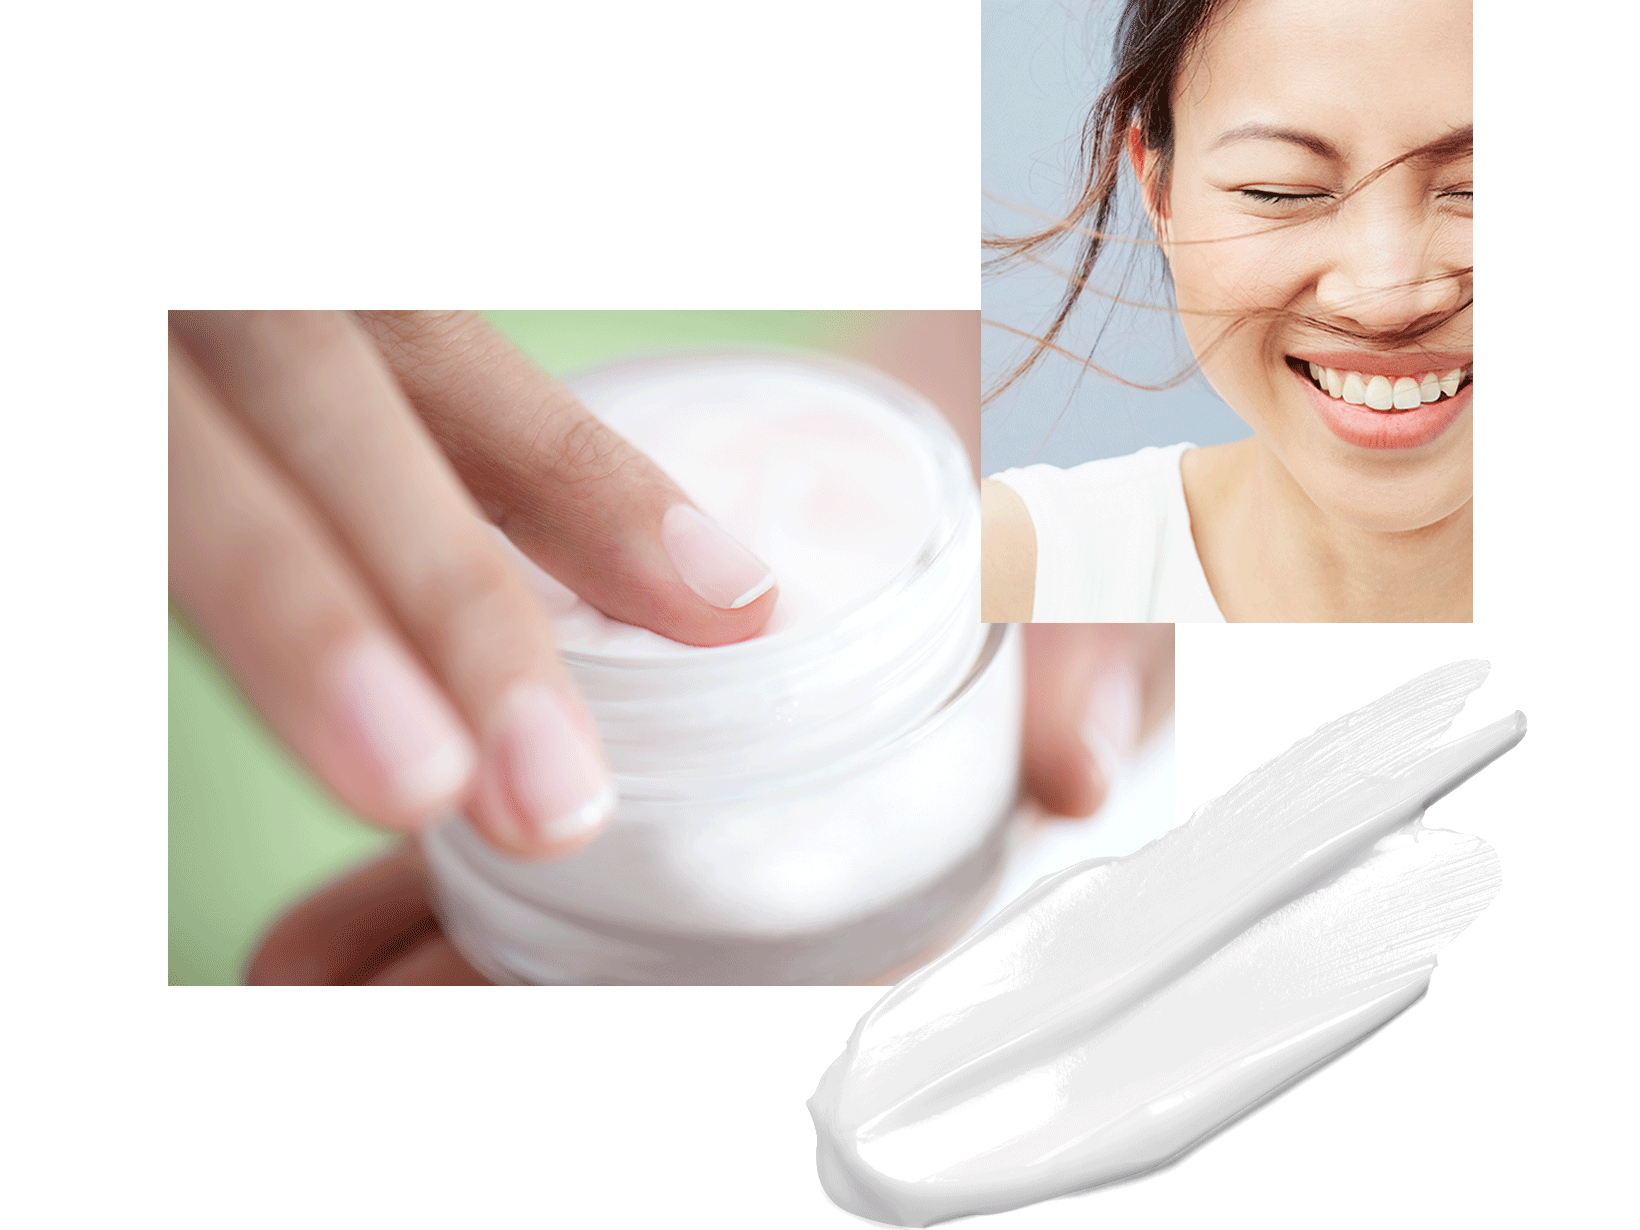 hand-in-cream-jar-smiling-woman